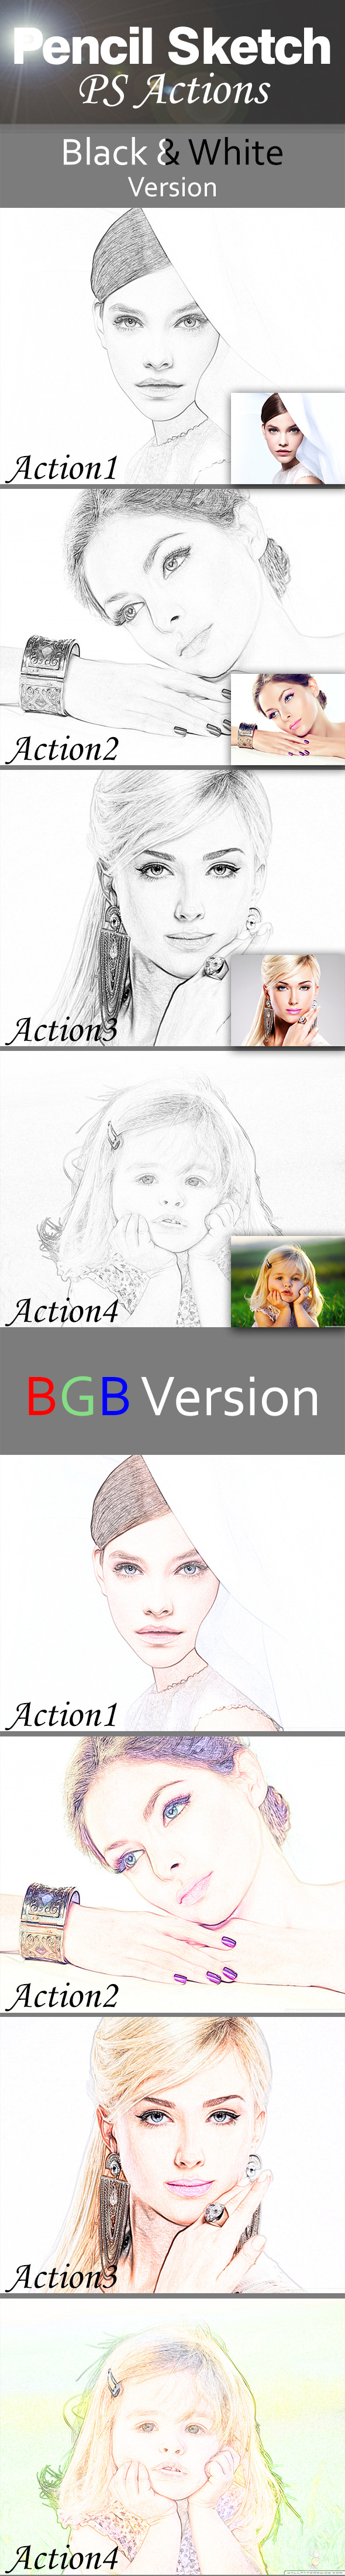 GraphicRiver Pencil Sketch Actions 10365691